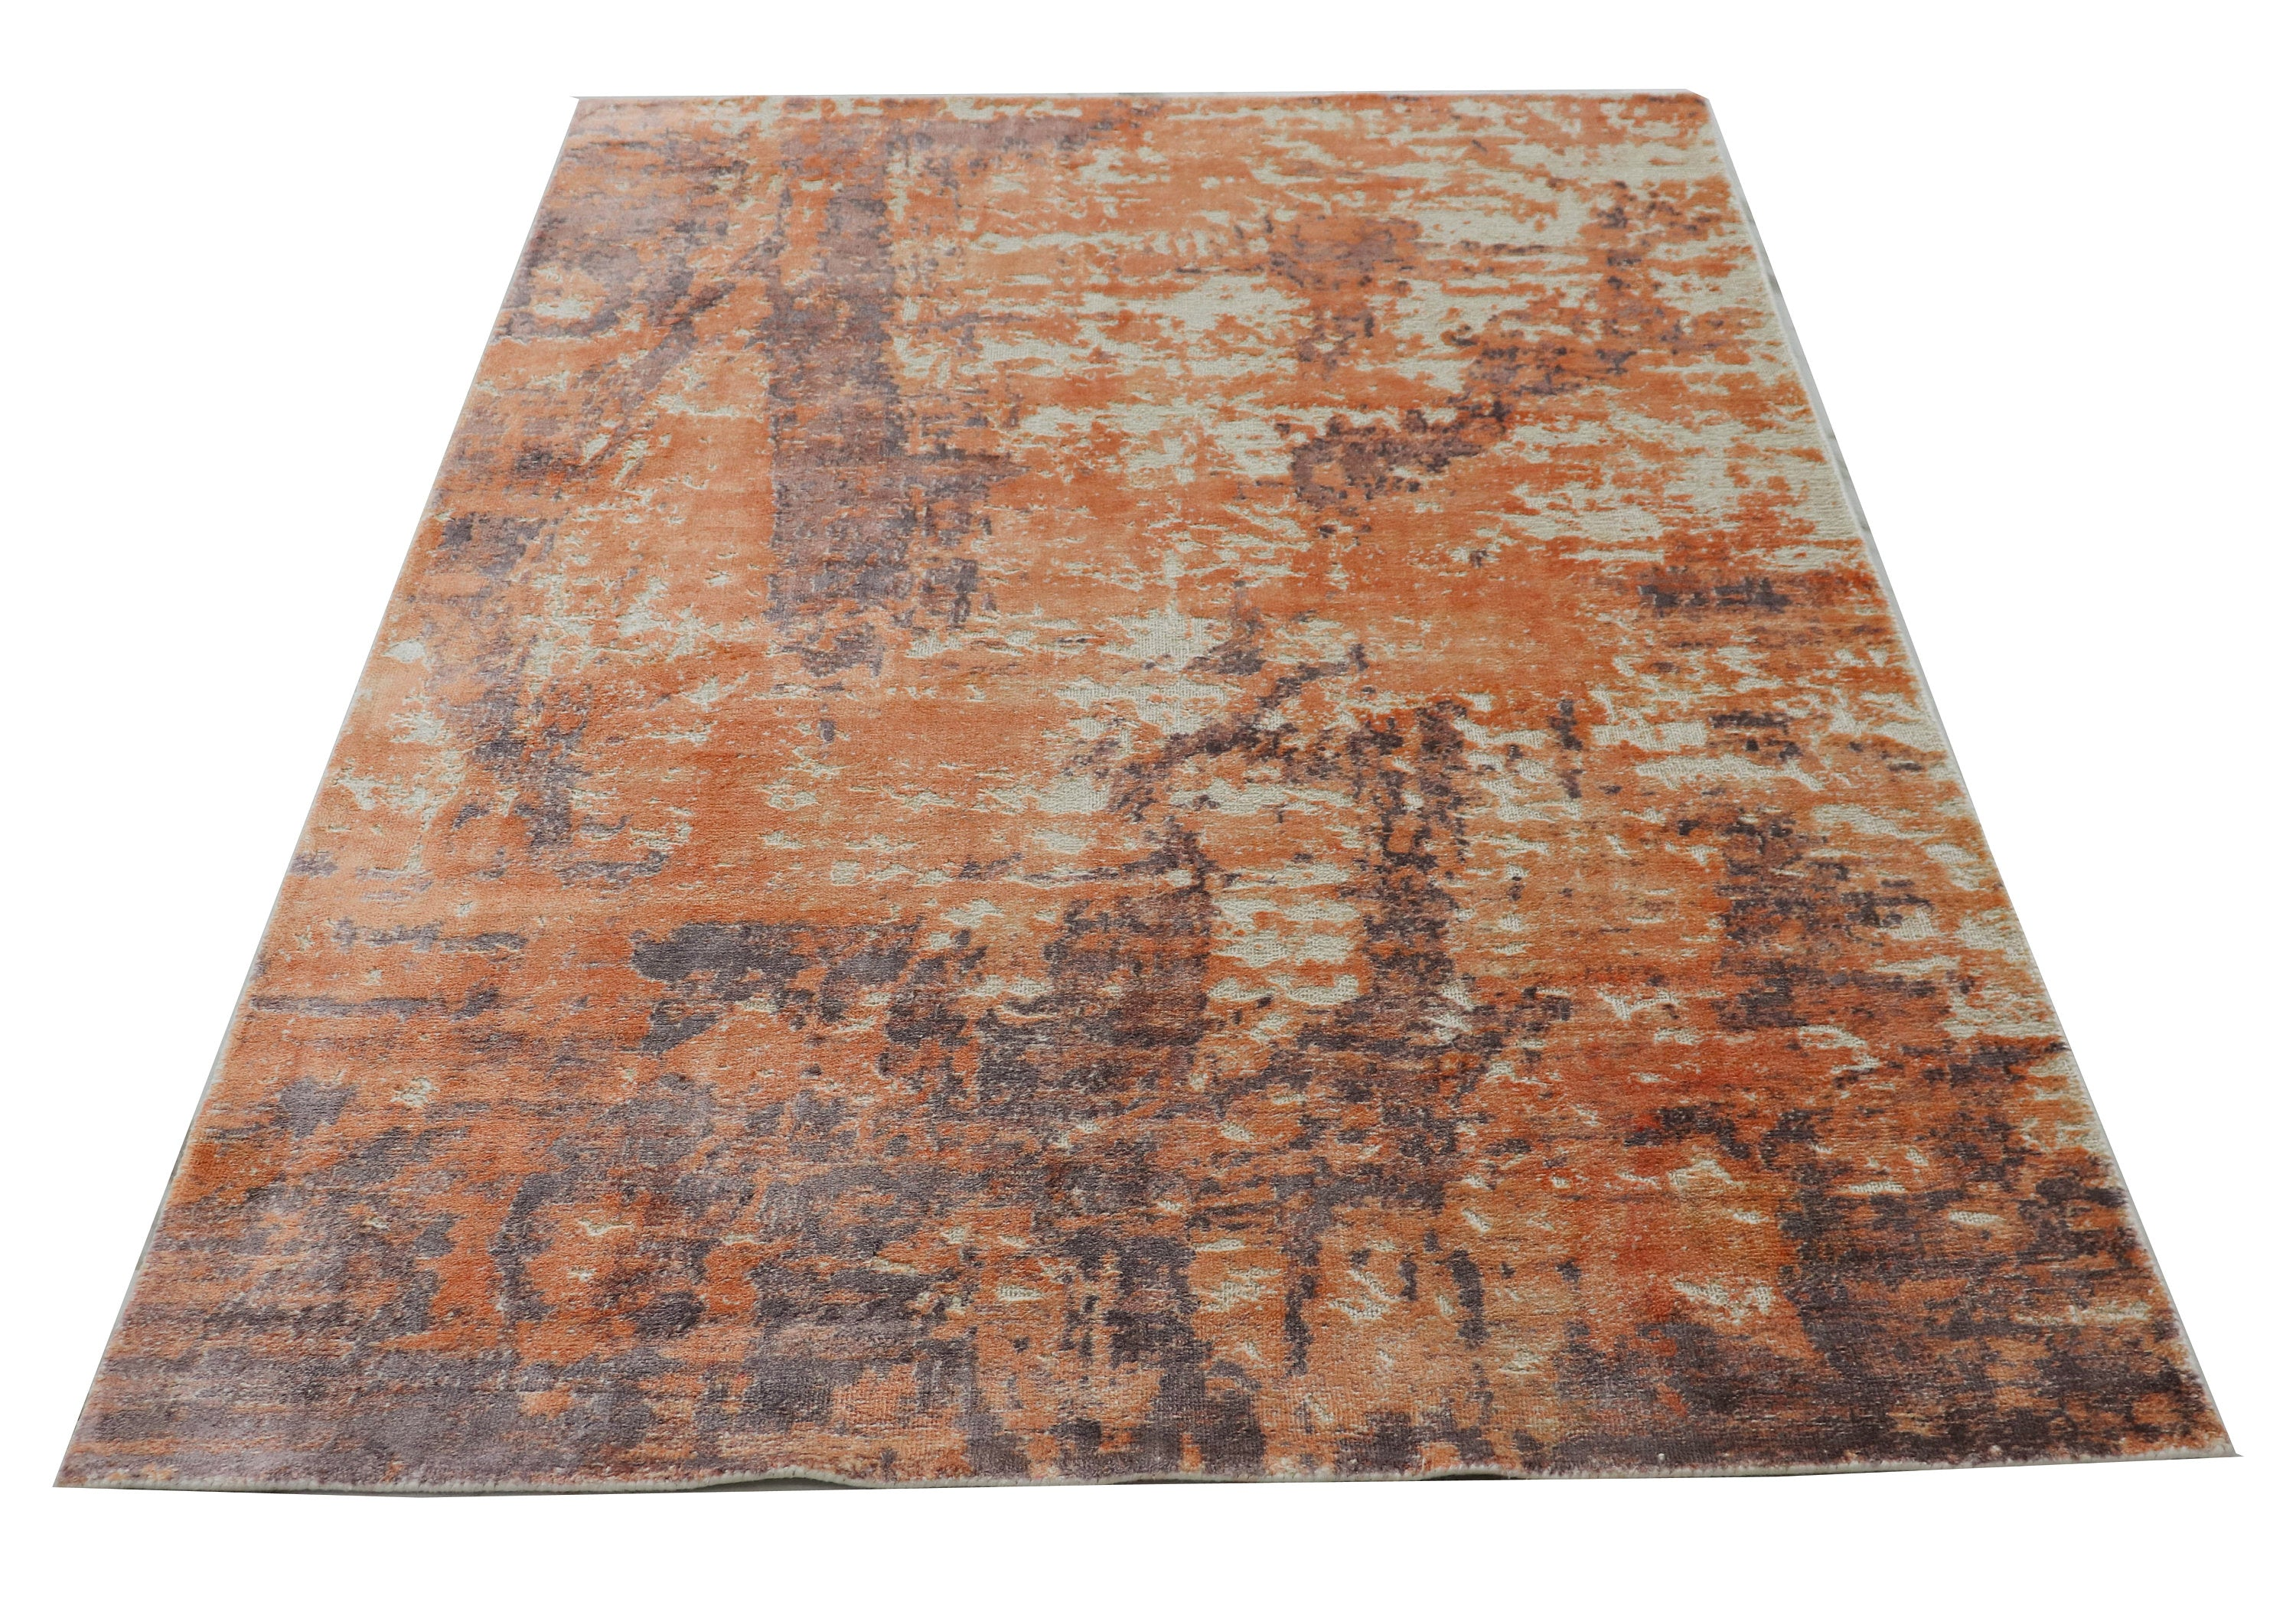 Unique Modern Handmade New Bronze Indian Area rug≡ 5x7 Living Room Rug ≡Distressed Area Rug≡ Oriental Silk Rugs≡ Modern Orange  Rug DN2749